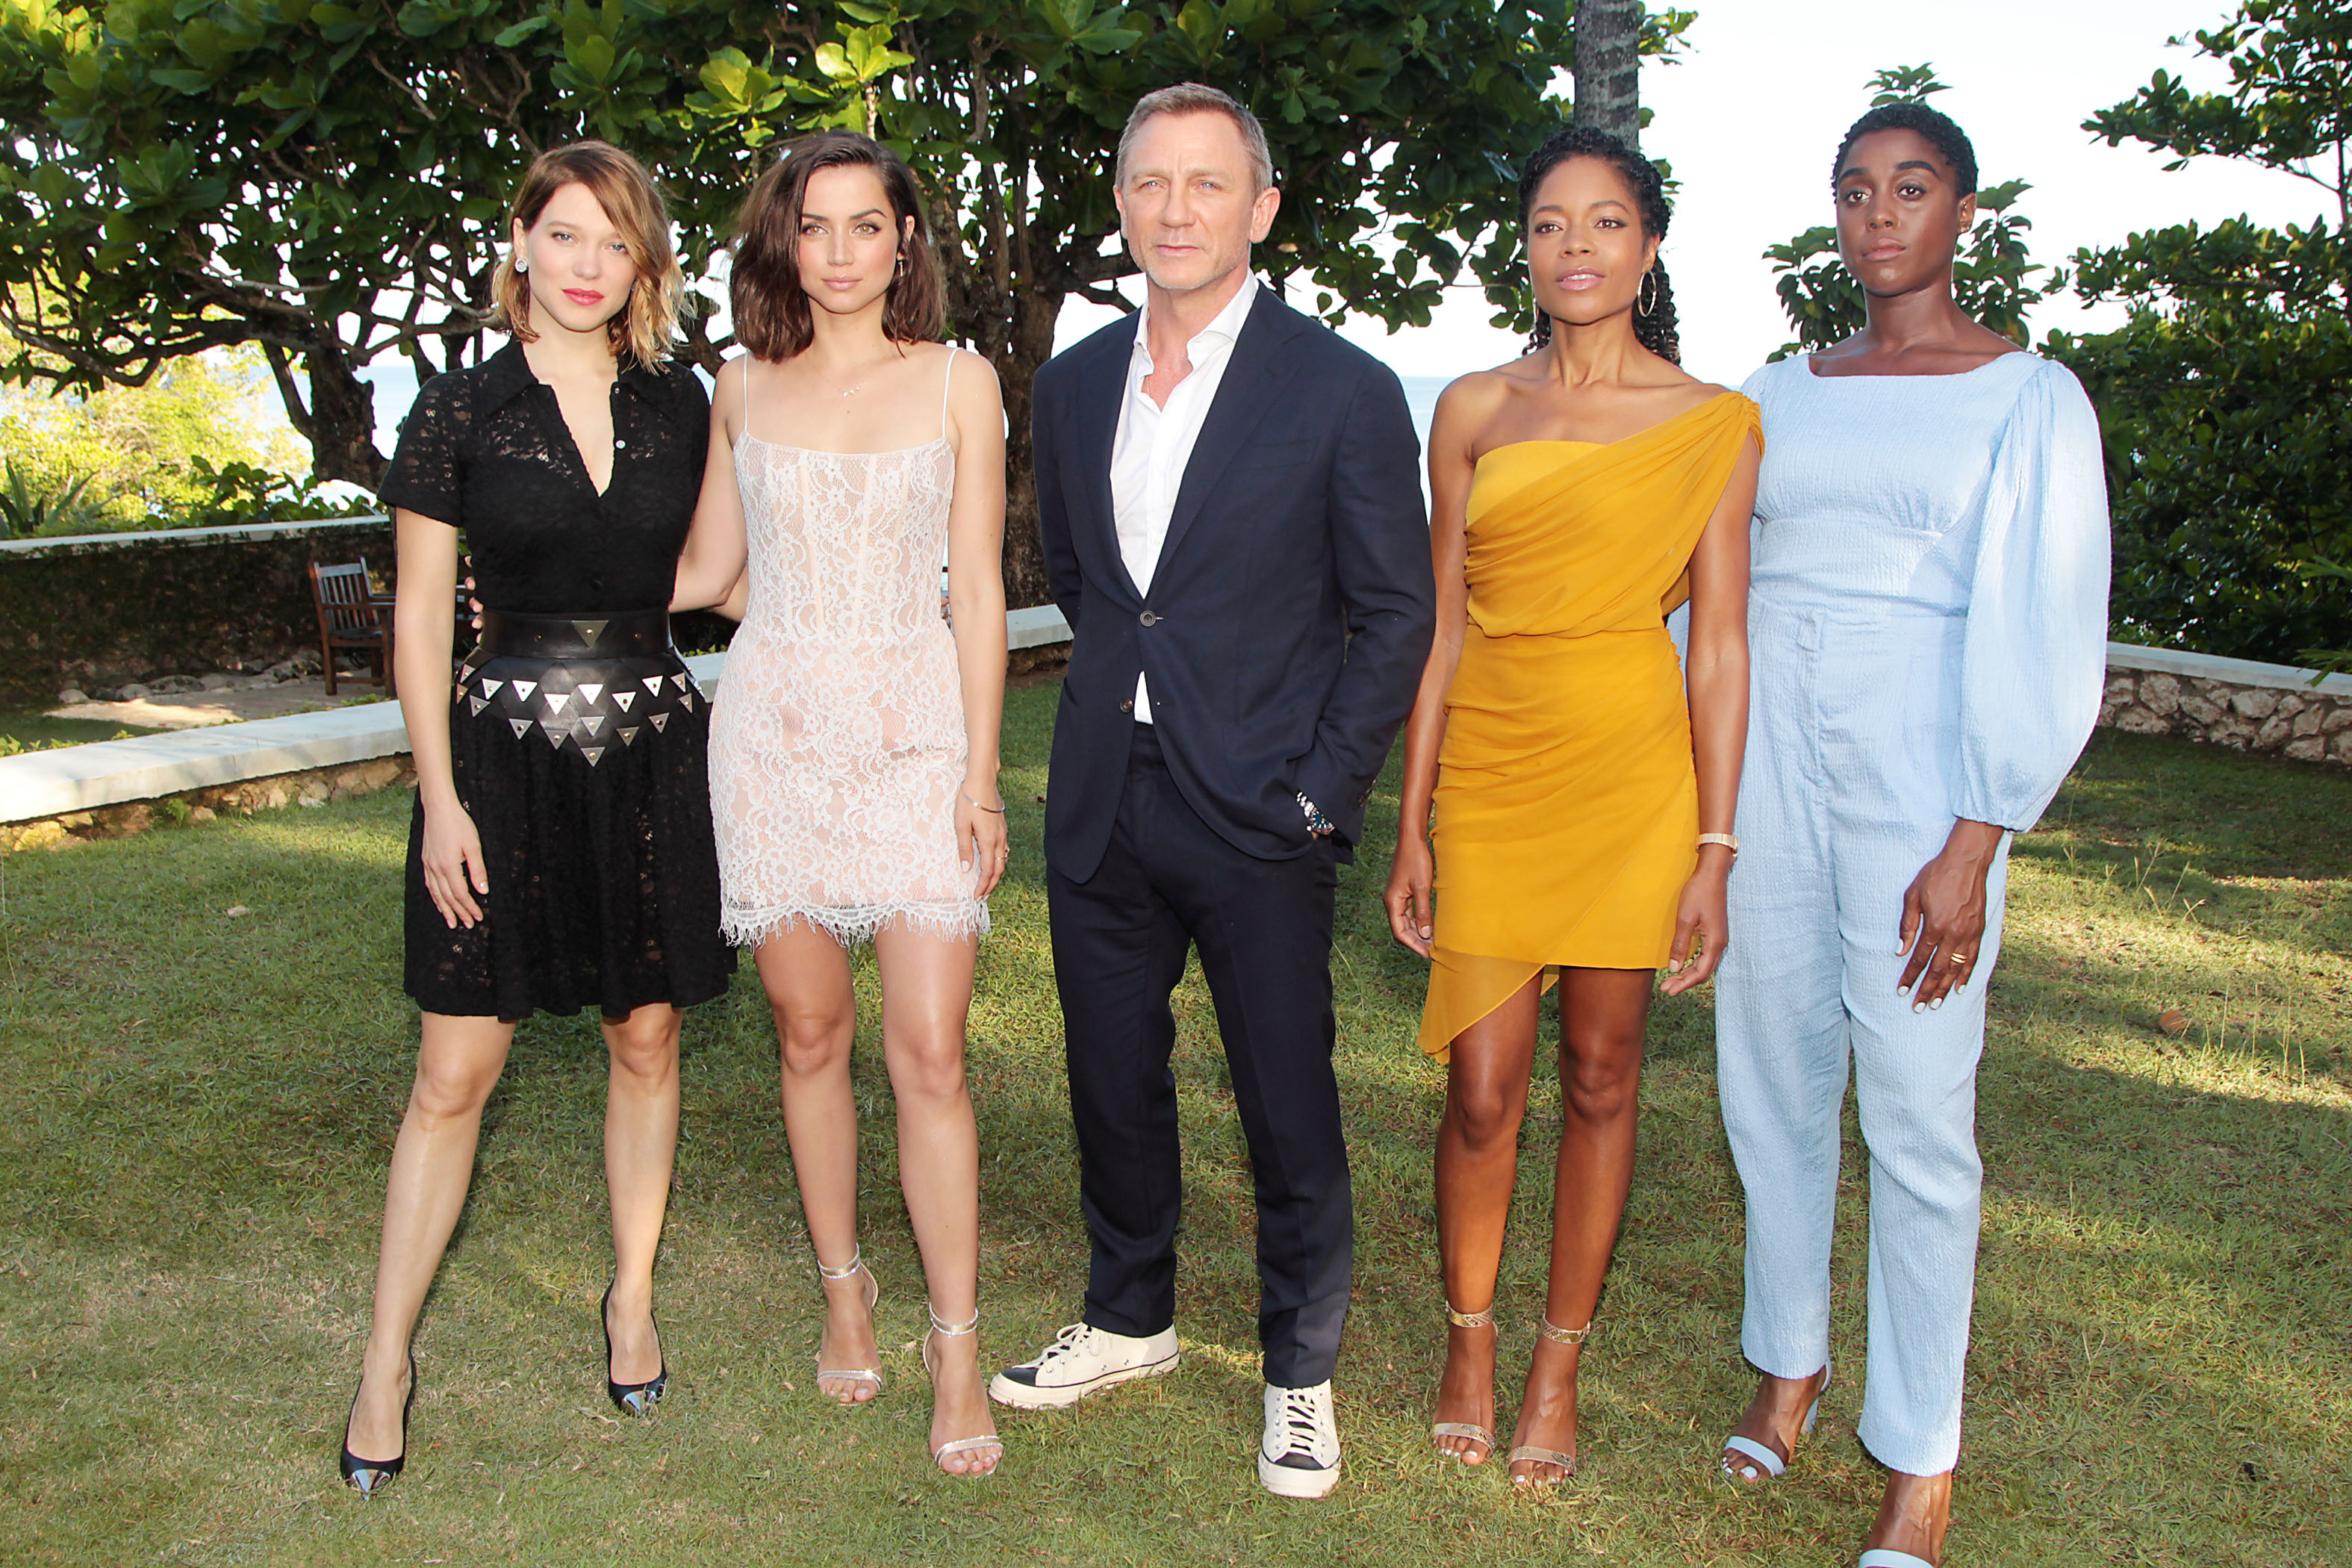 Bond 25 Press Junket In Jamaica, With Daniel Craig, Naomie Harris And More